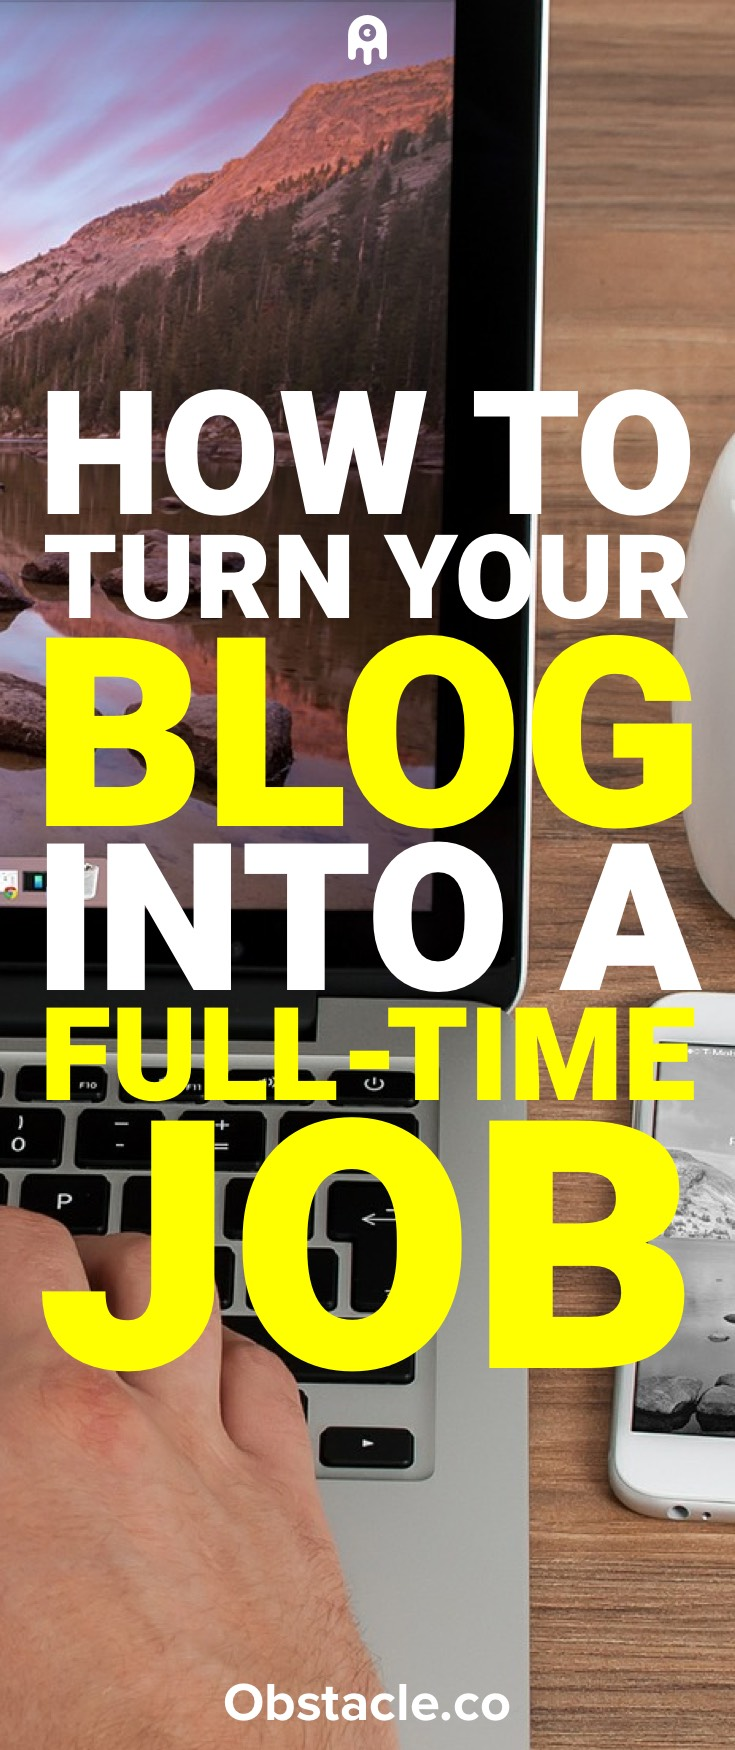 How to Turn Your Blog Into Your Full-Time Job